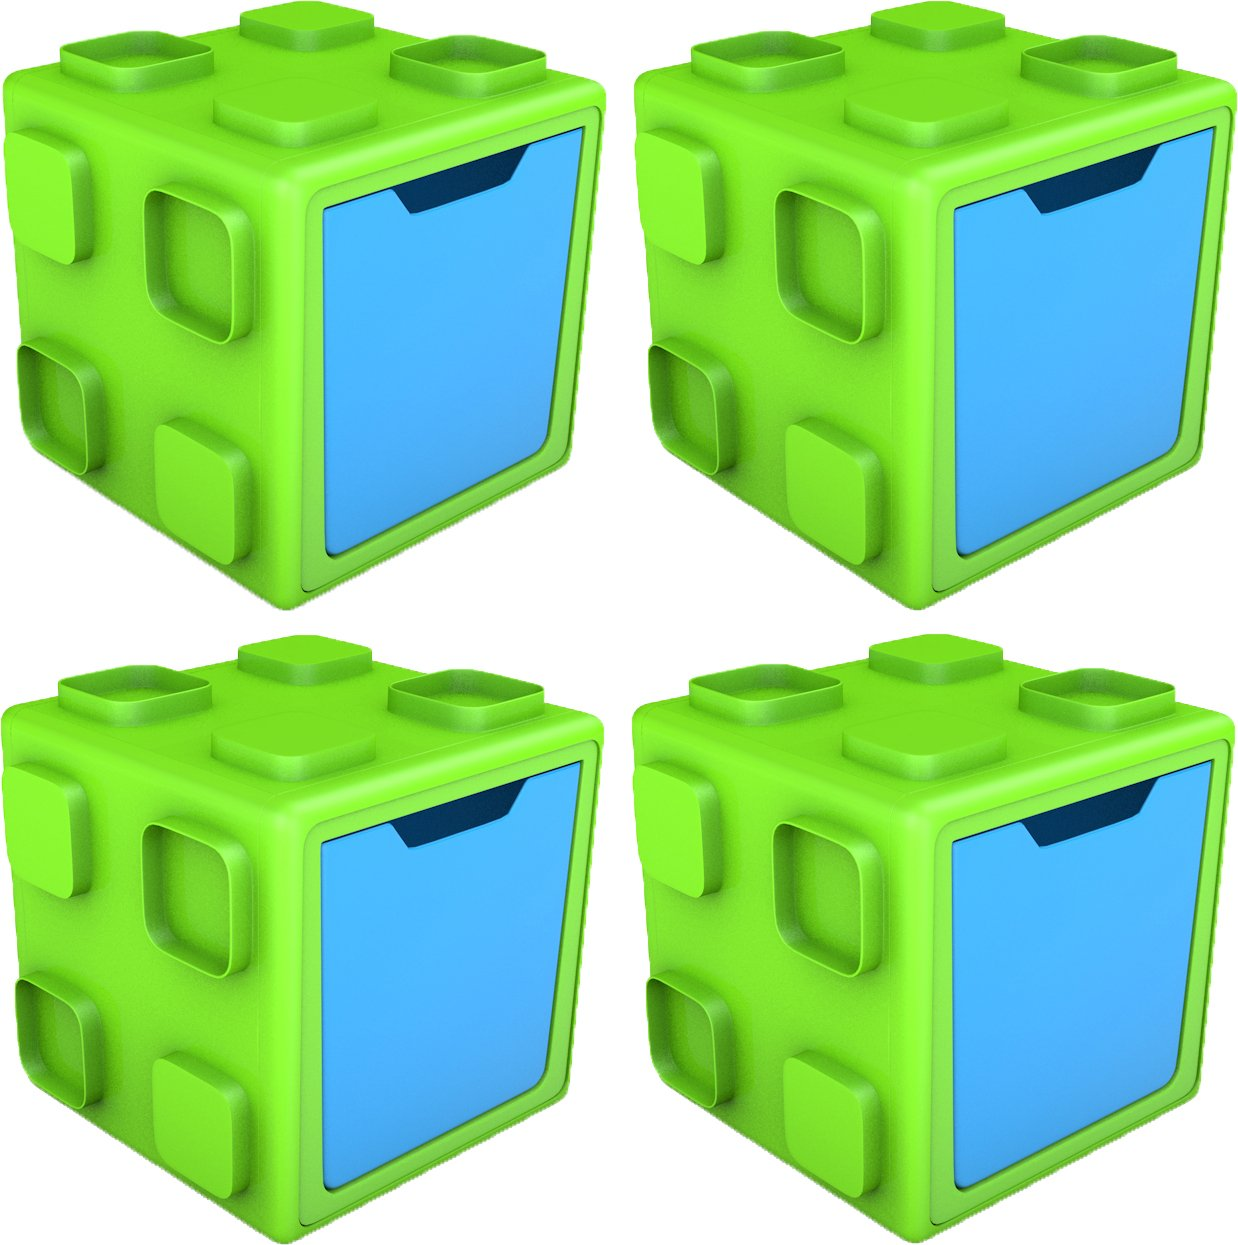 Chillafish BOX: Connectable Toy Storage and Play System, Lime/Blue, 4 Pack